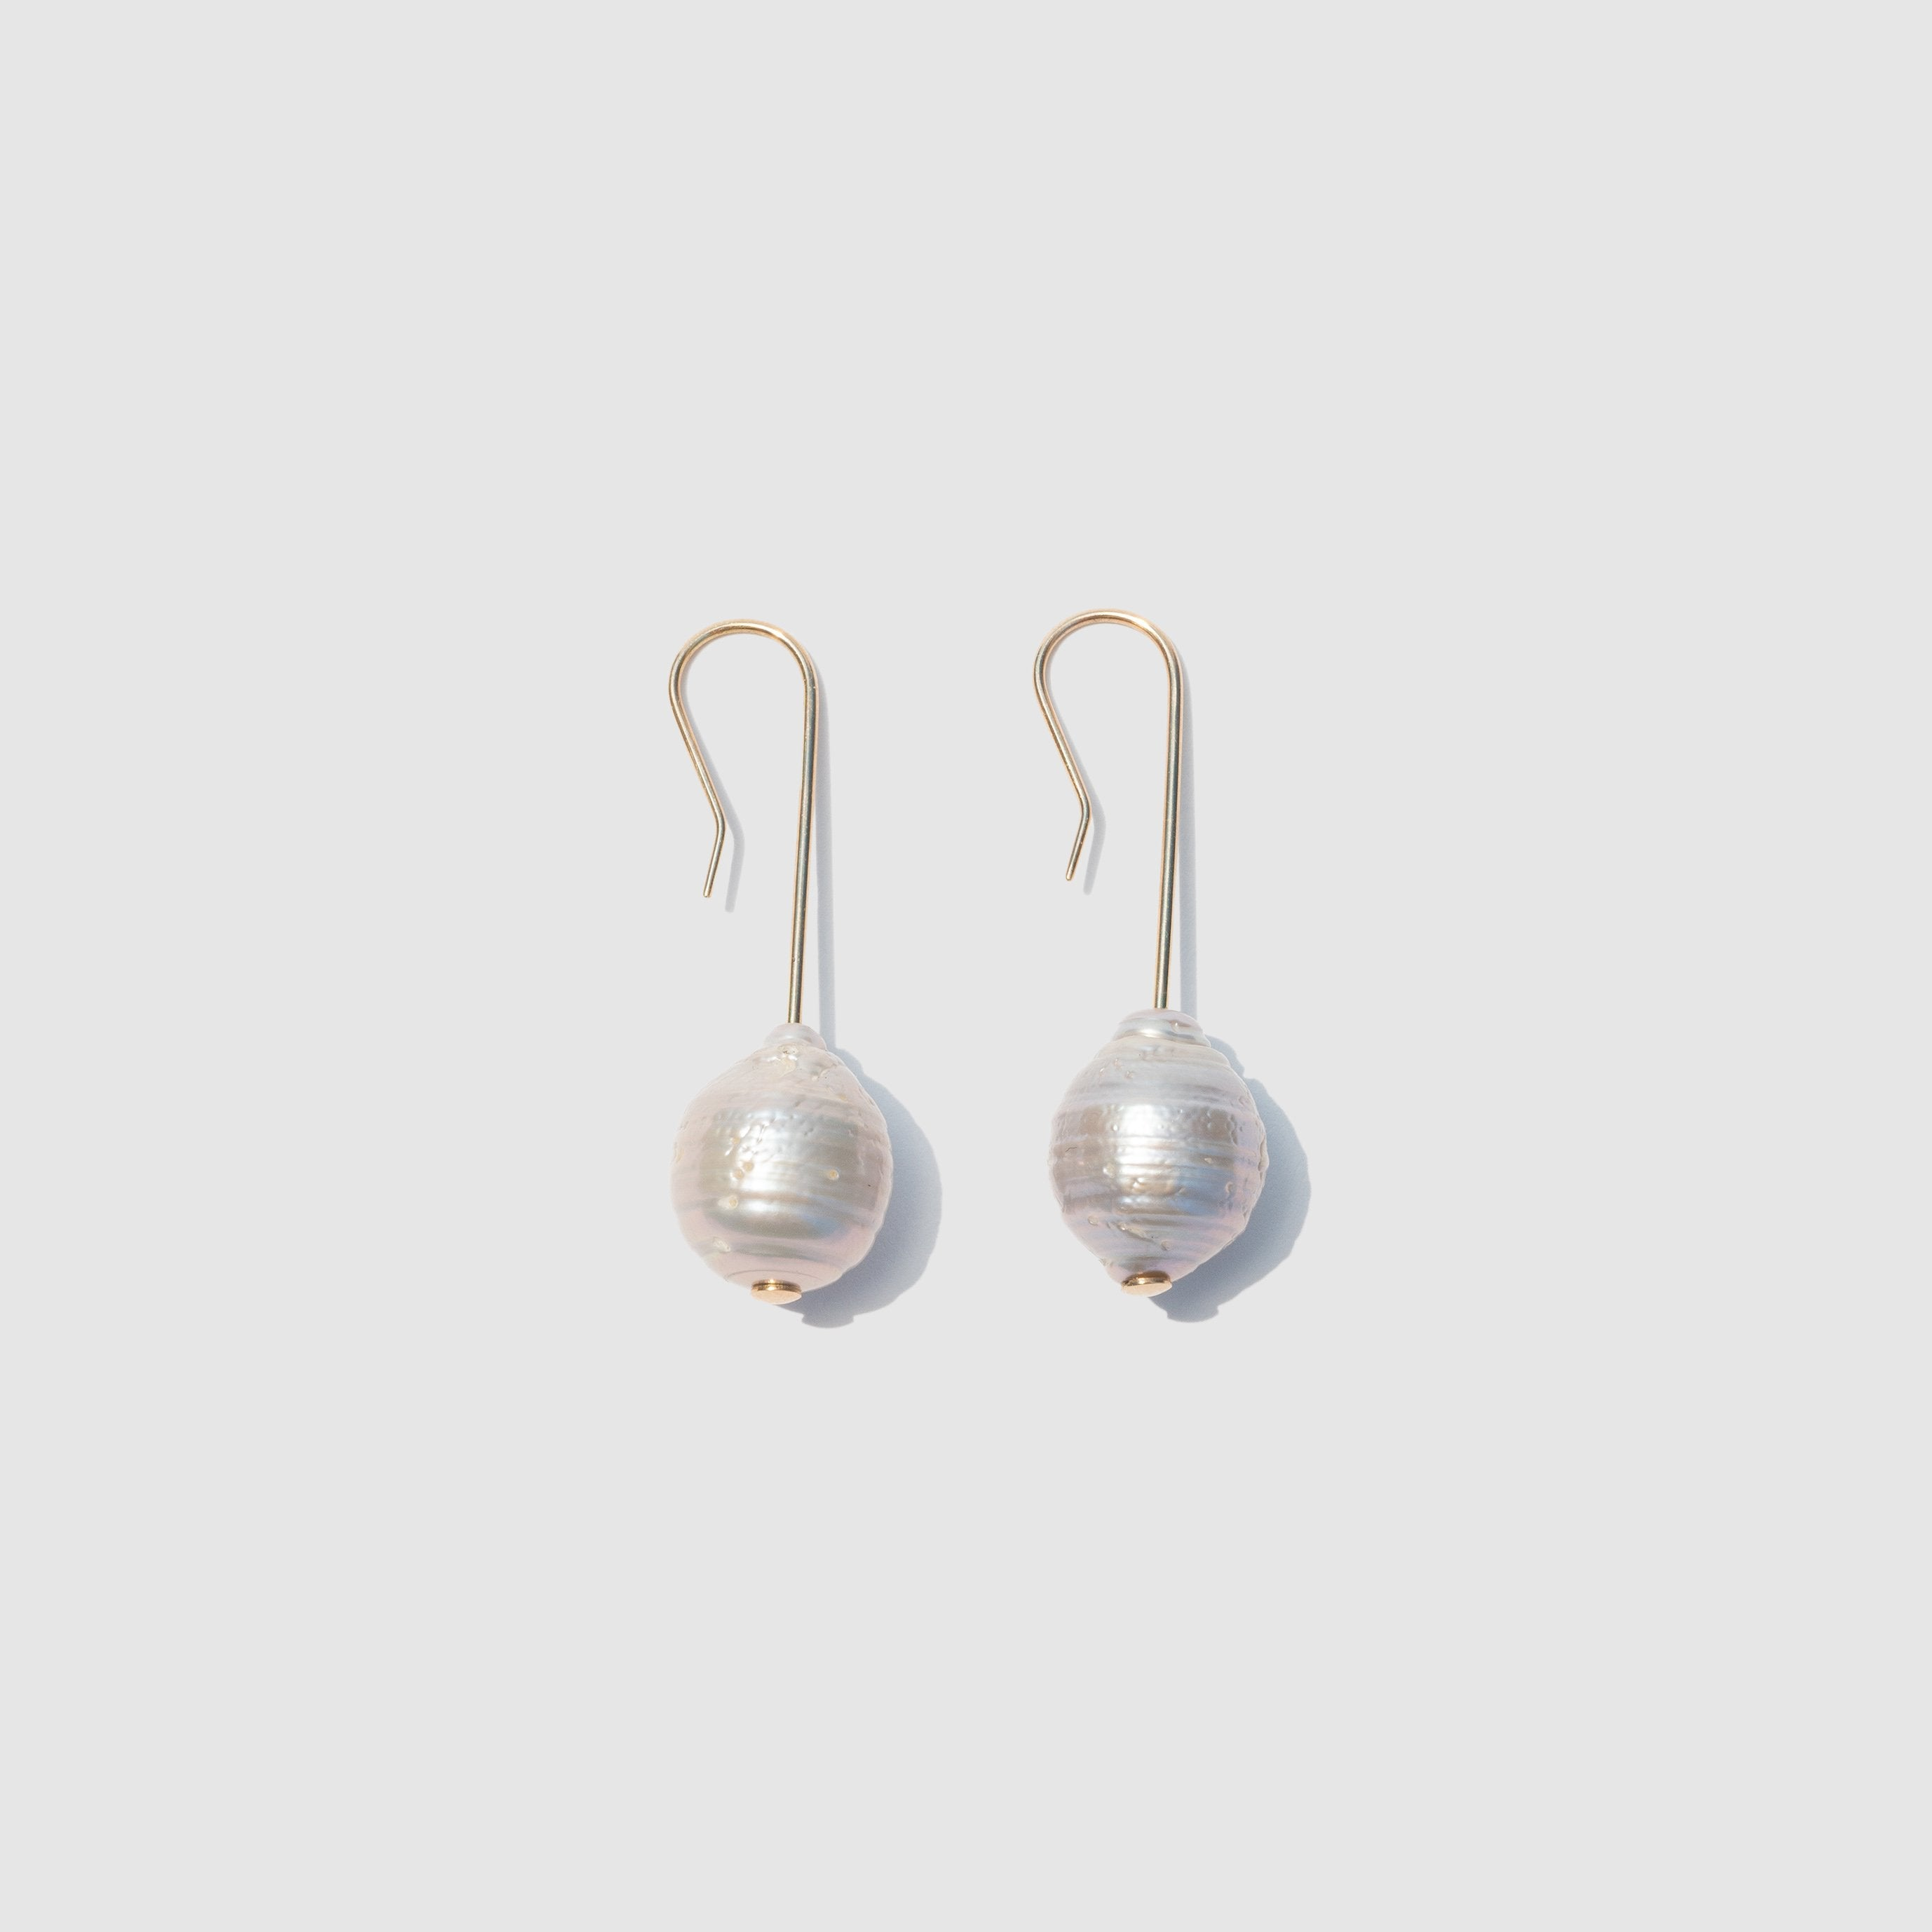 JEWELRY - GREY PEARL EARRINGS